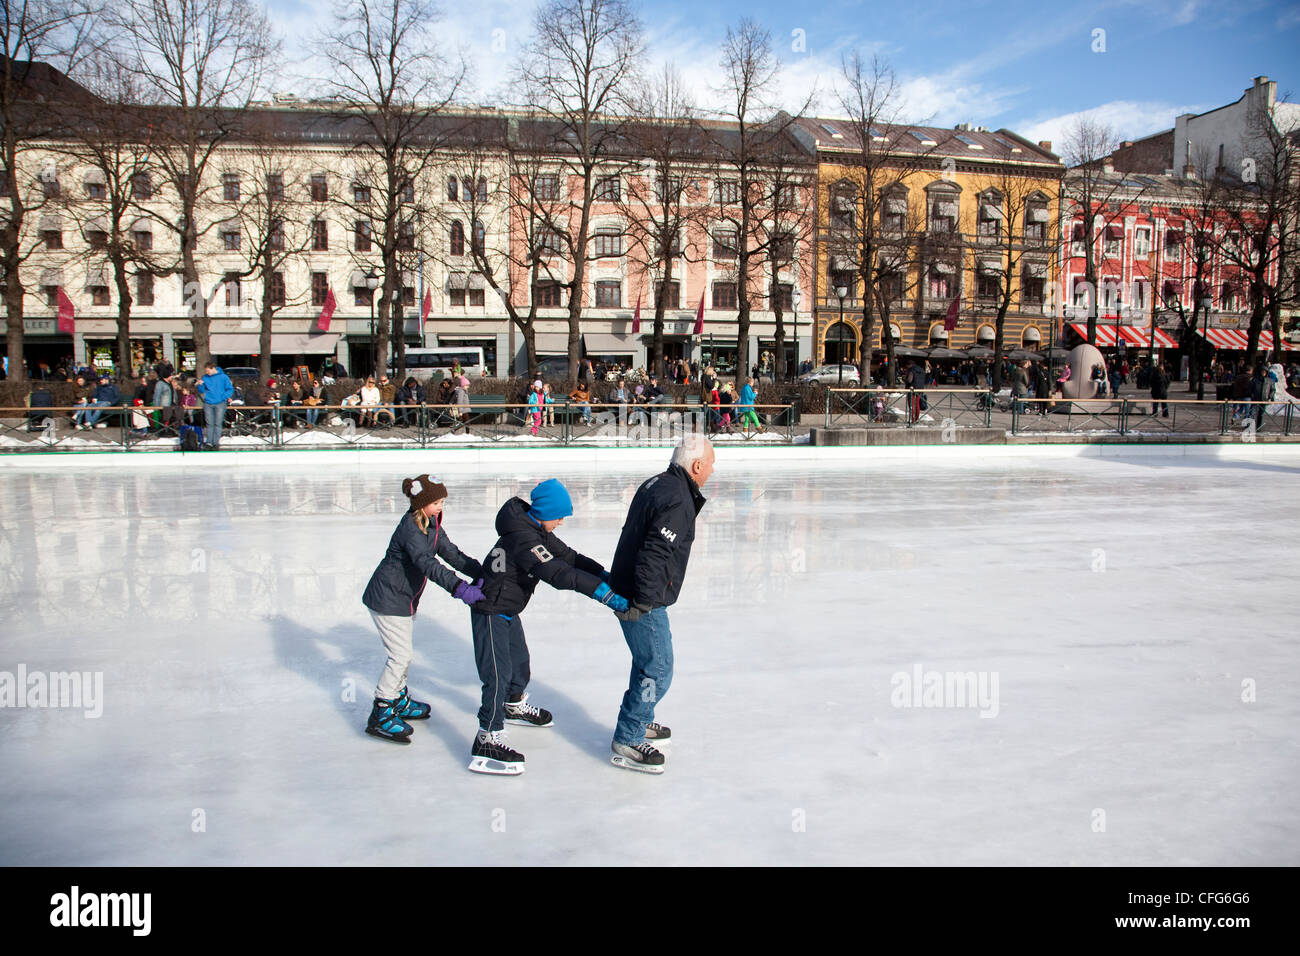 Spikersuppa Skating Rink, at Eidsvolls plass, central Oslo, Norway - Stock Image